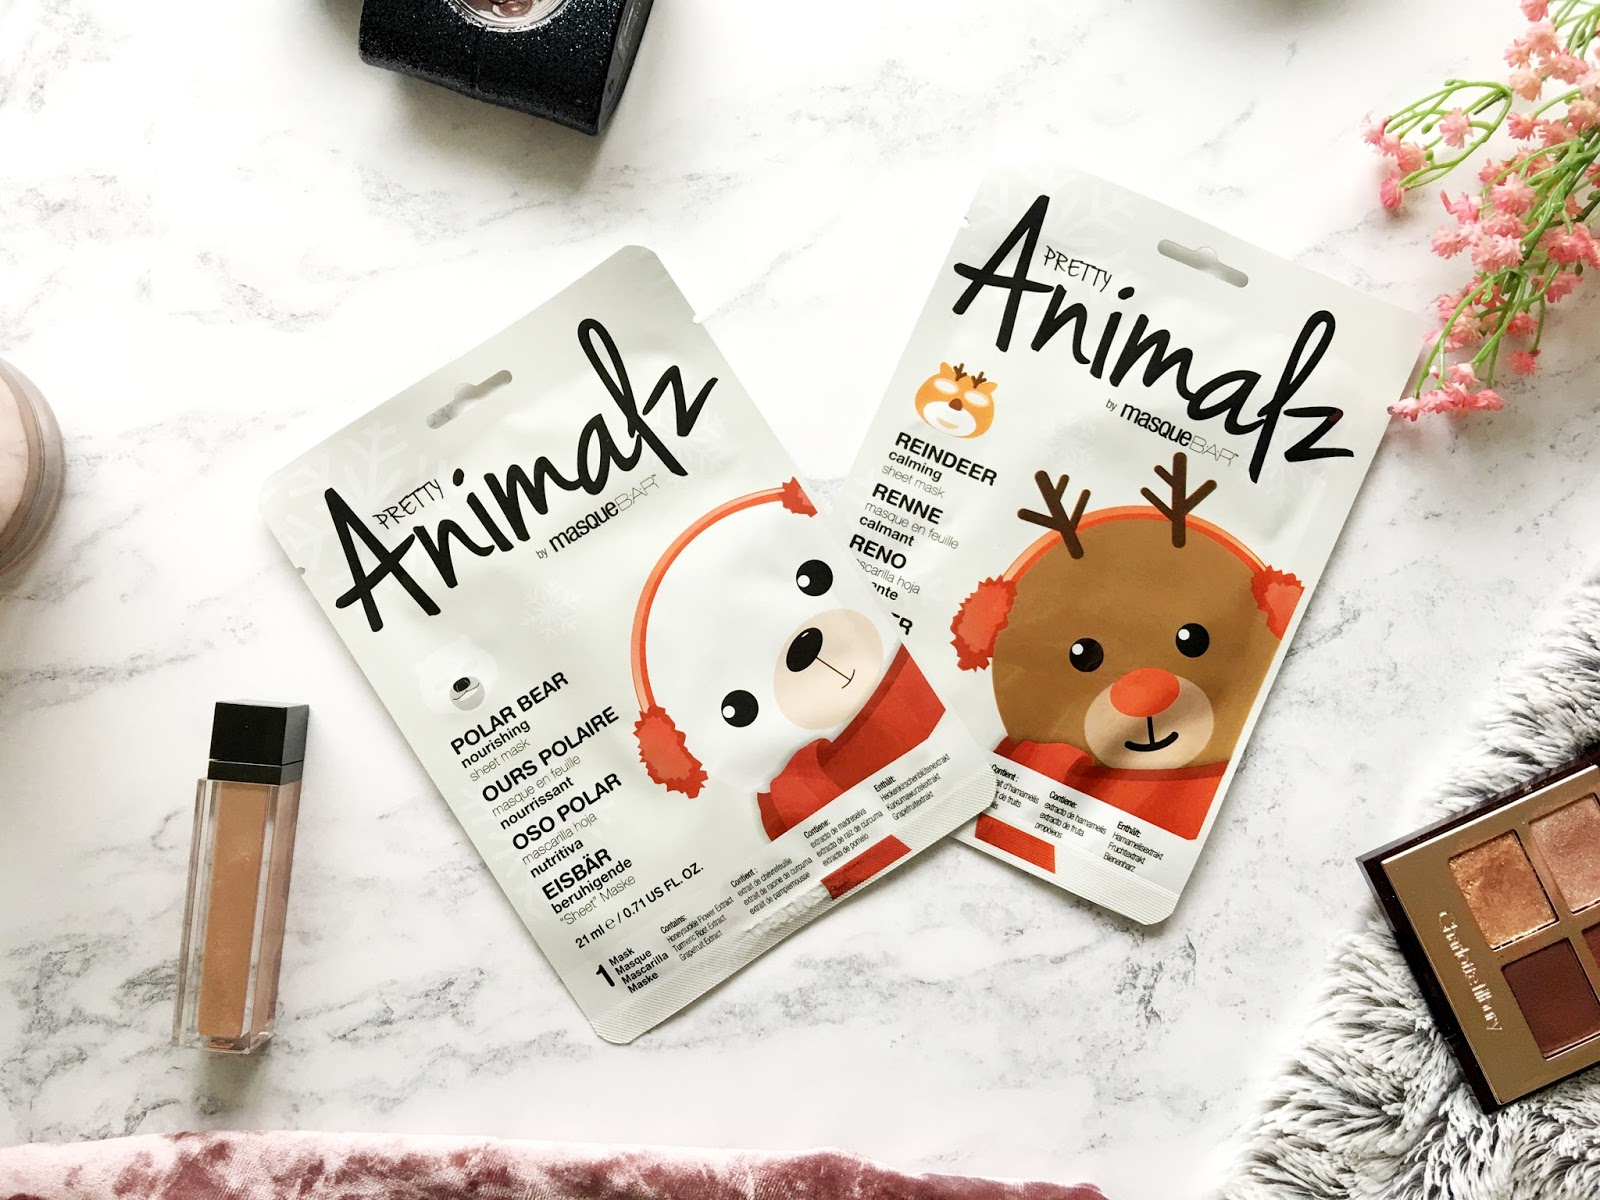 Pretty Animalz Sheet Masks